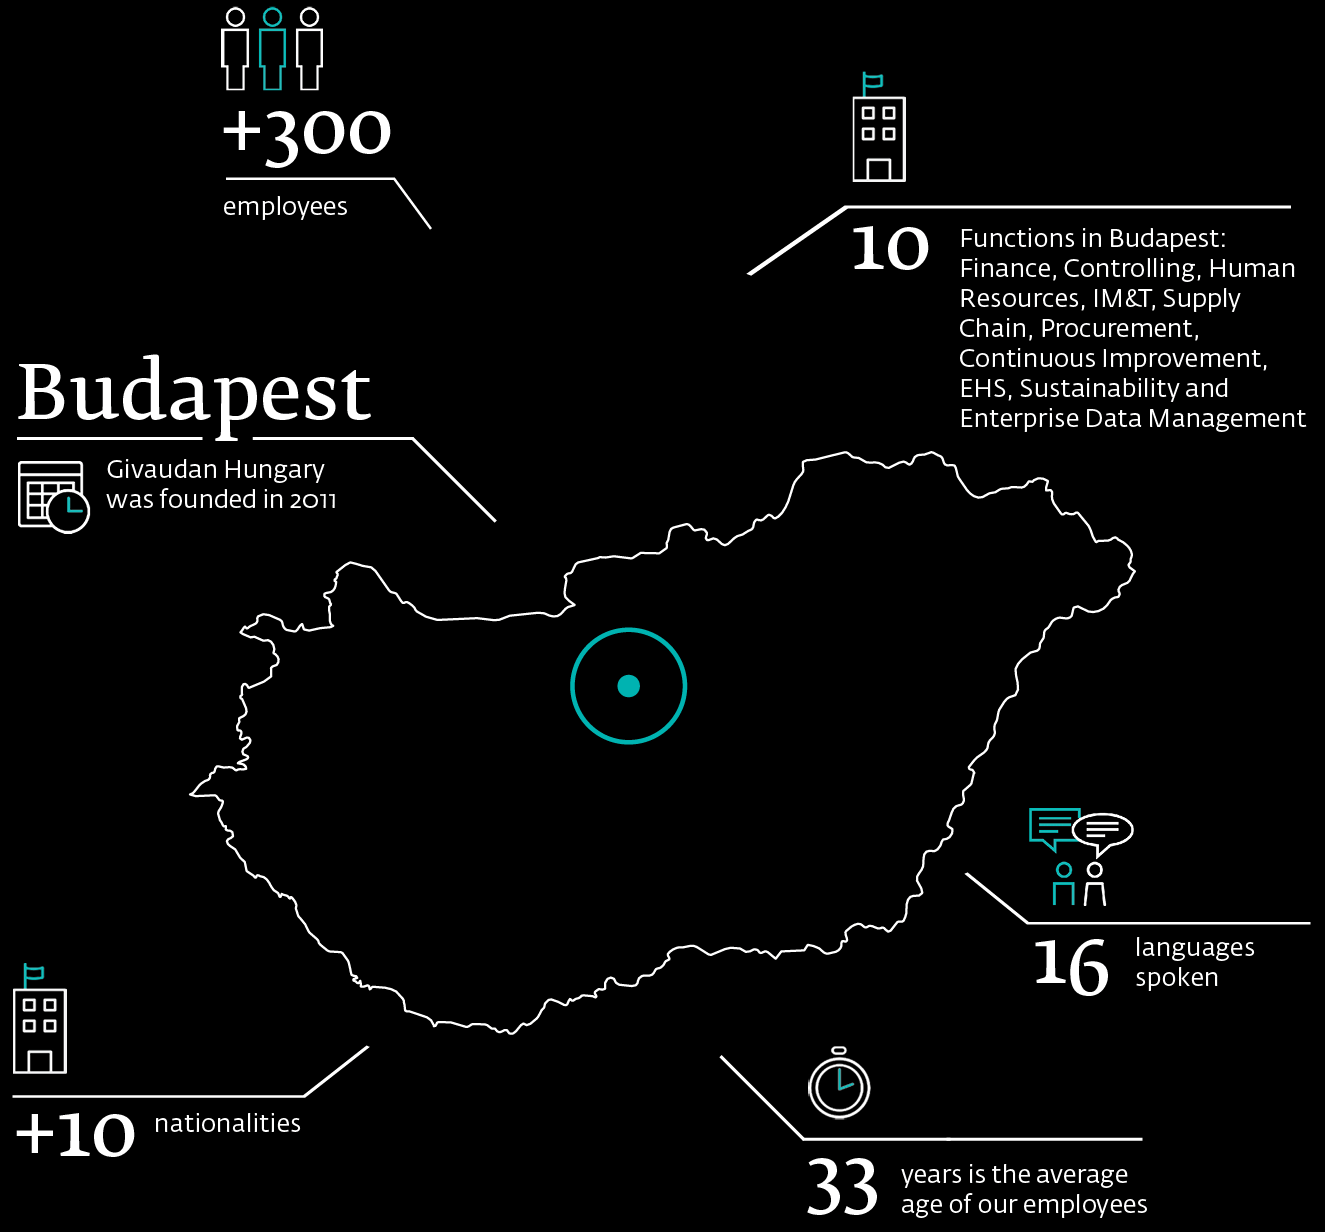 Givaudan fast facts in Hungary